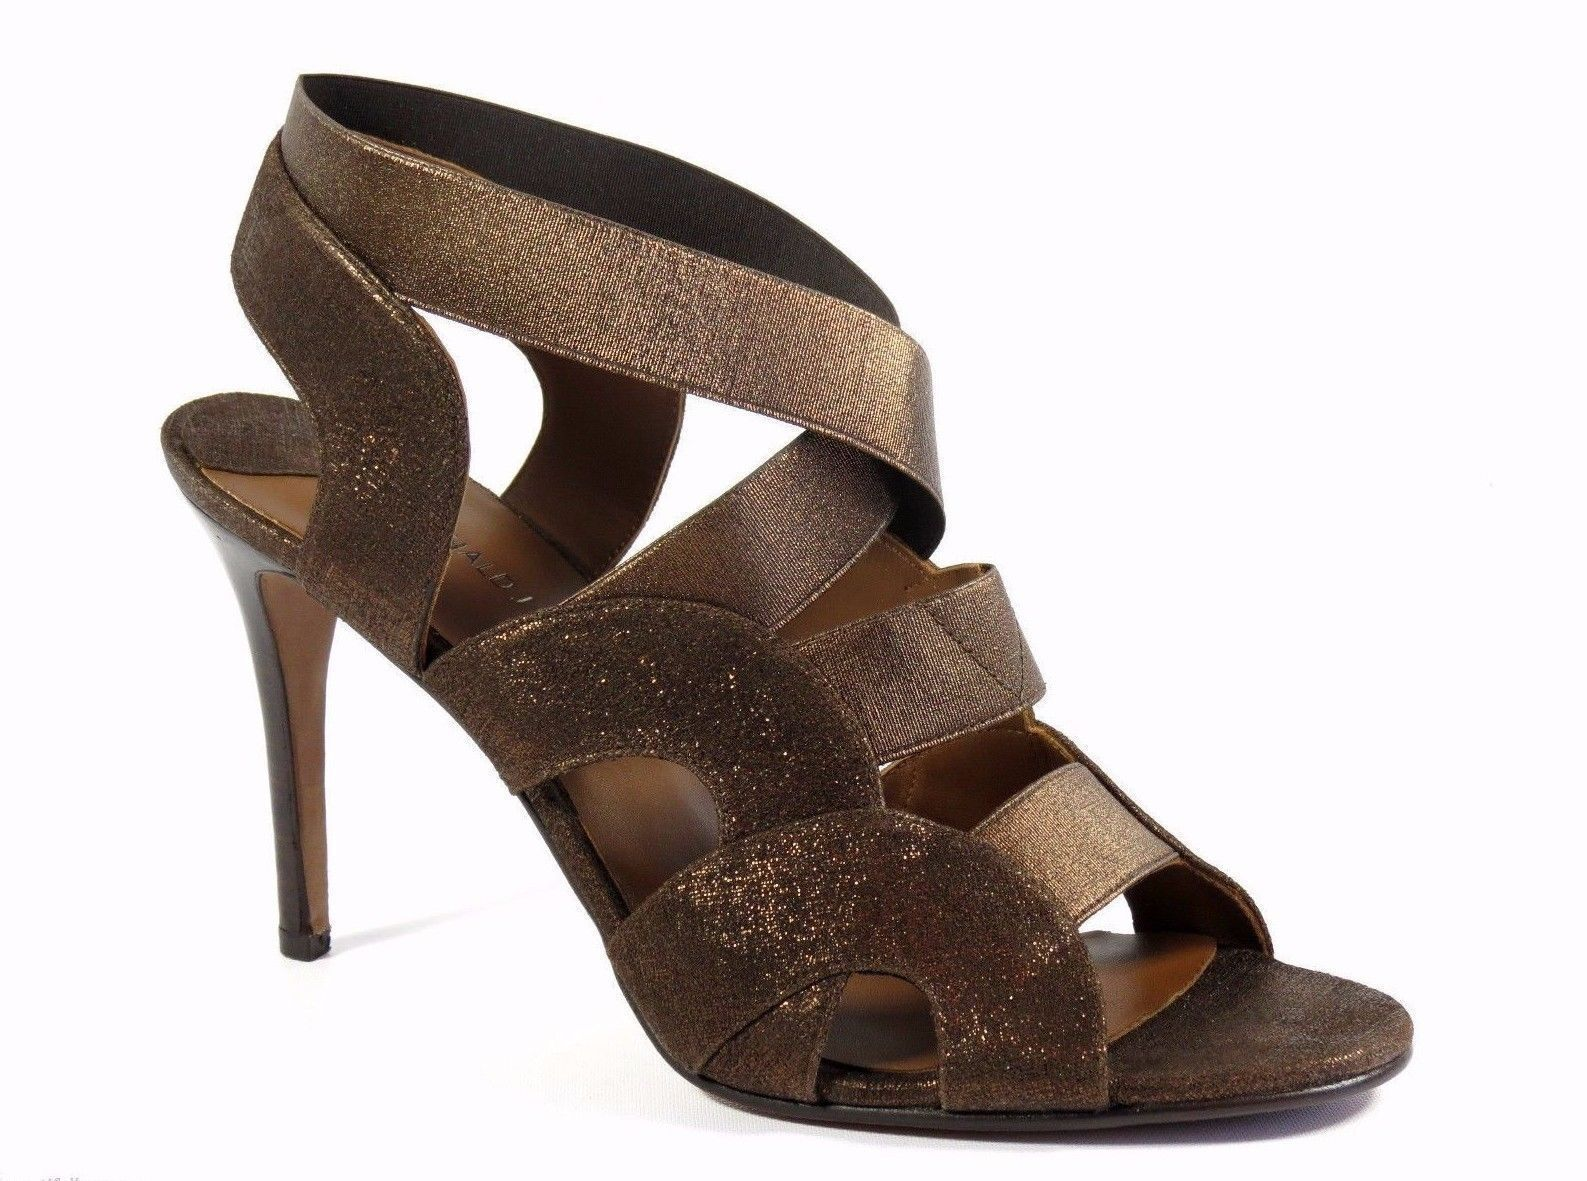 Donald Pliner Milos Bronze Metallic Pelle Elastic Strap Open Toe High Heel 9.5